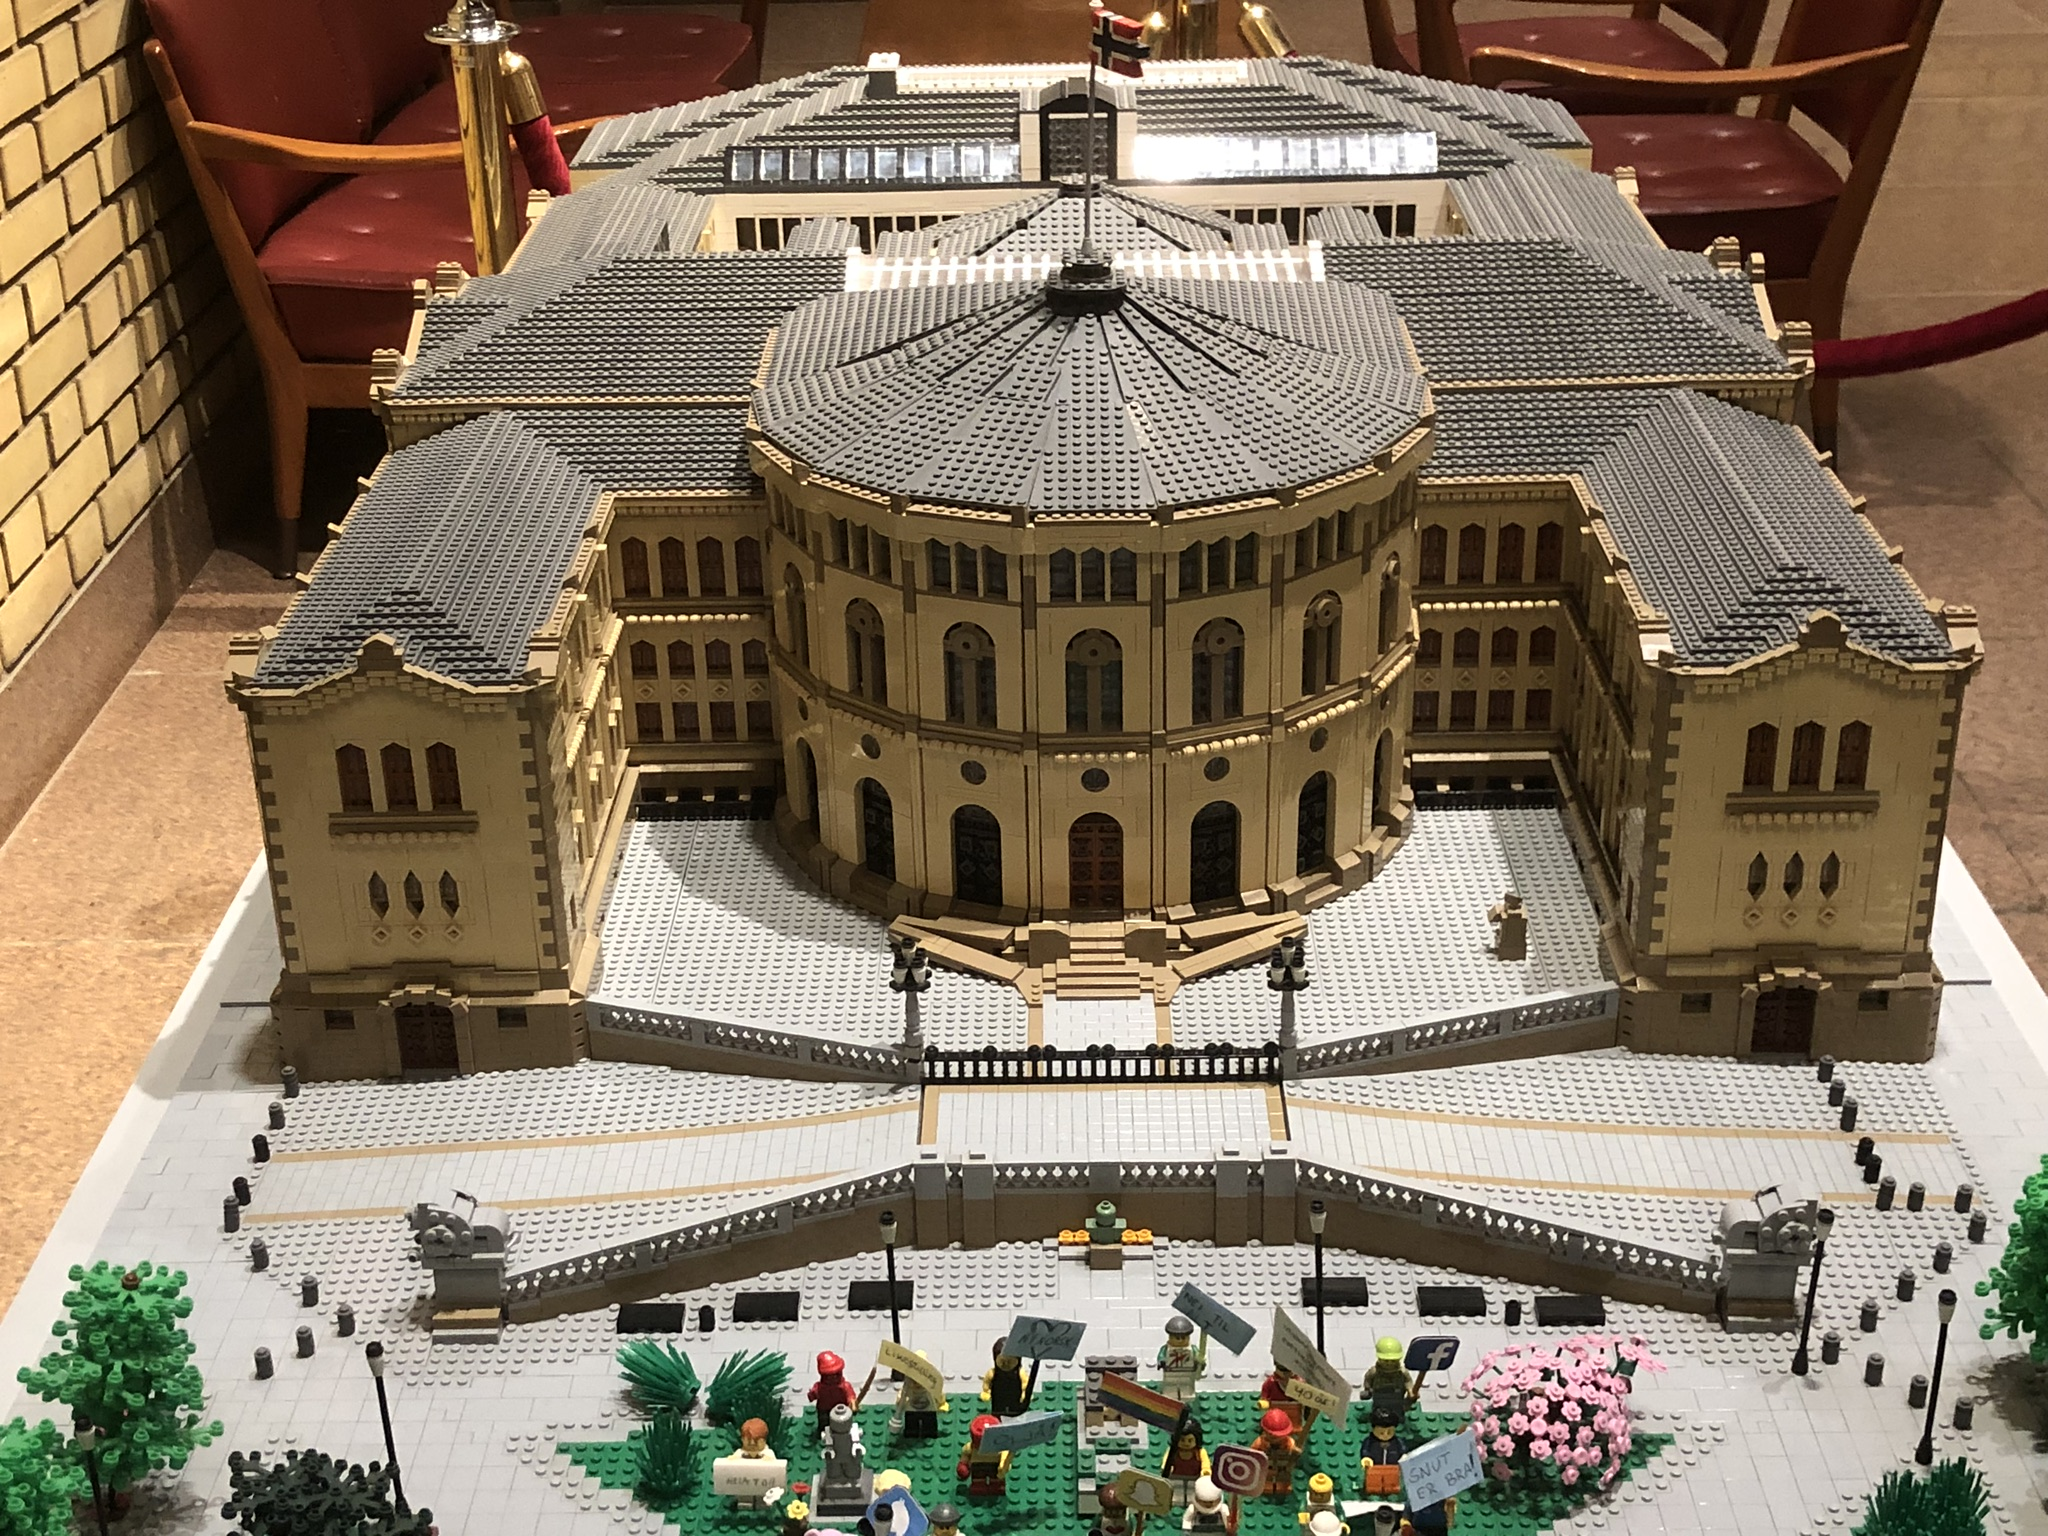 The Norwegian parliament in LEGO